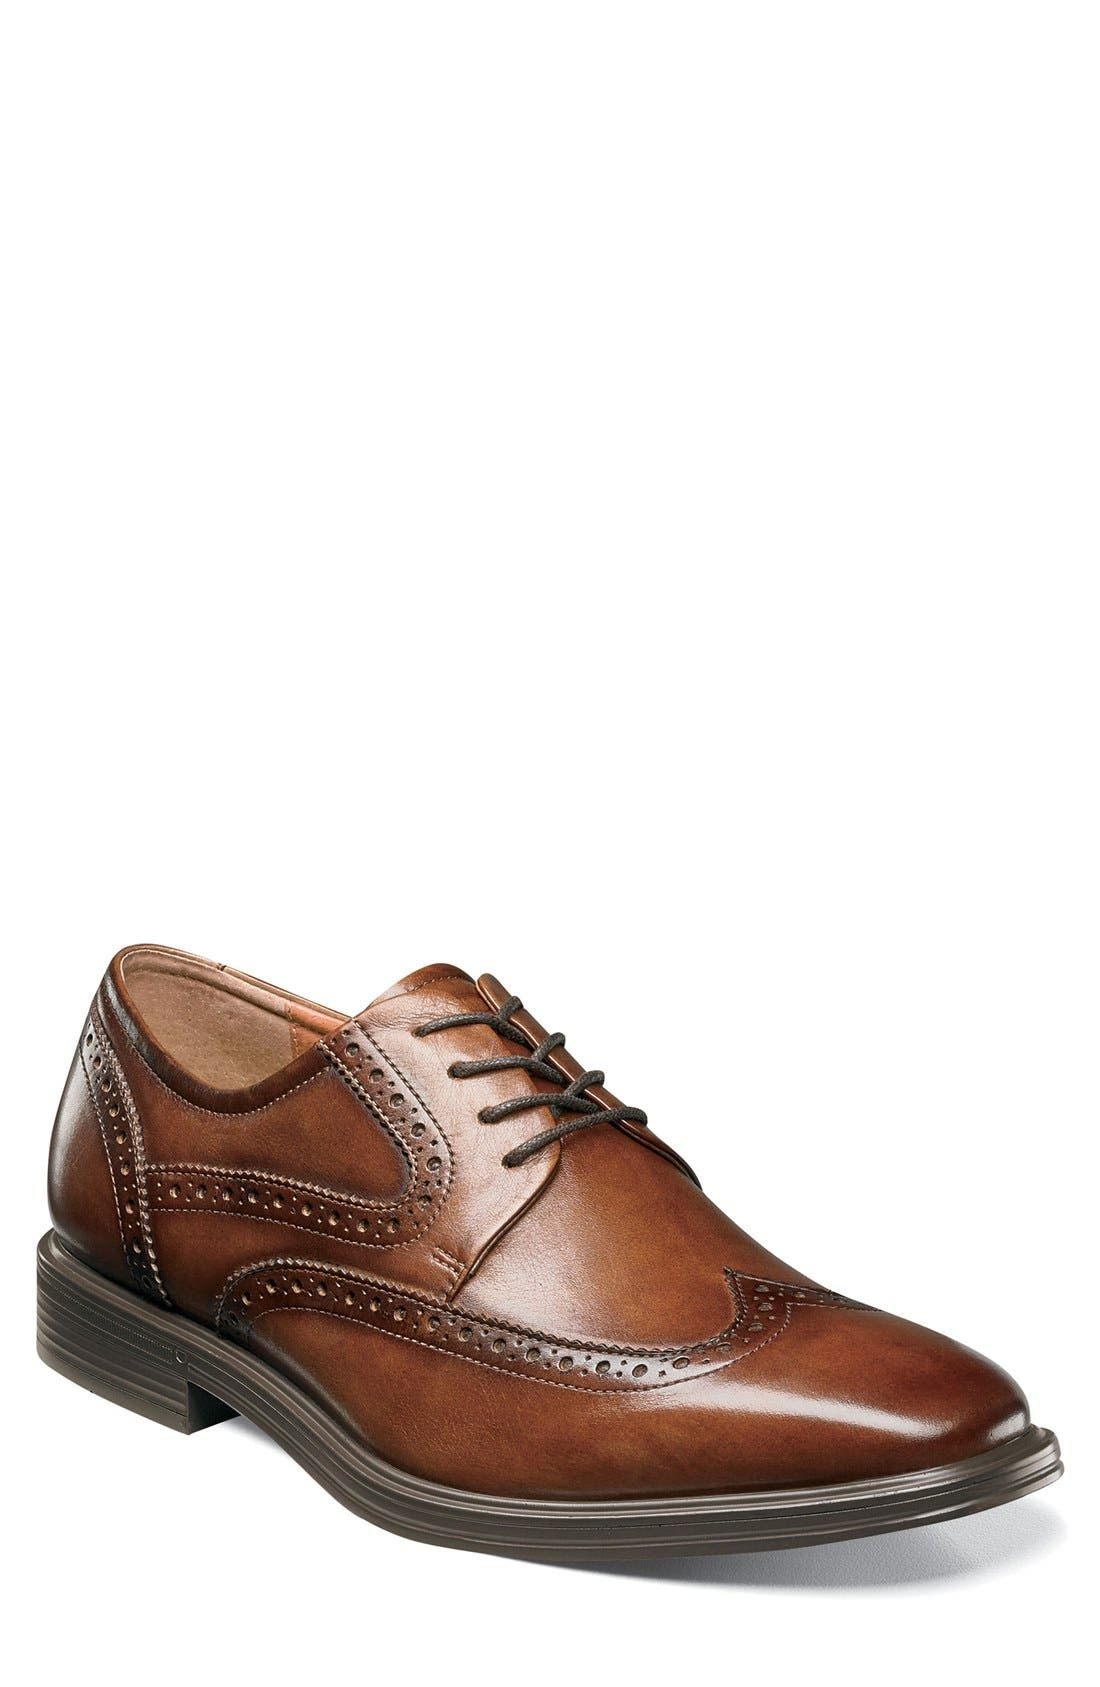 Heights Wingtip,                             Alternate thumbnail 10, color,